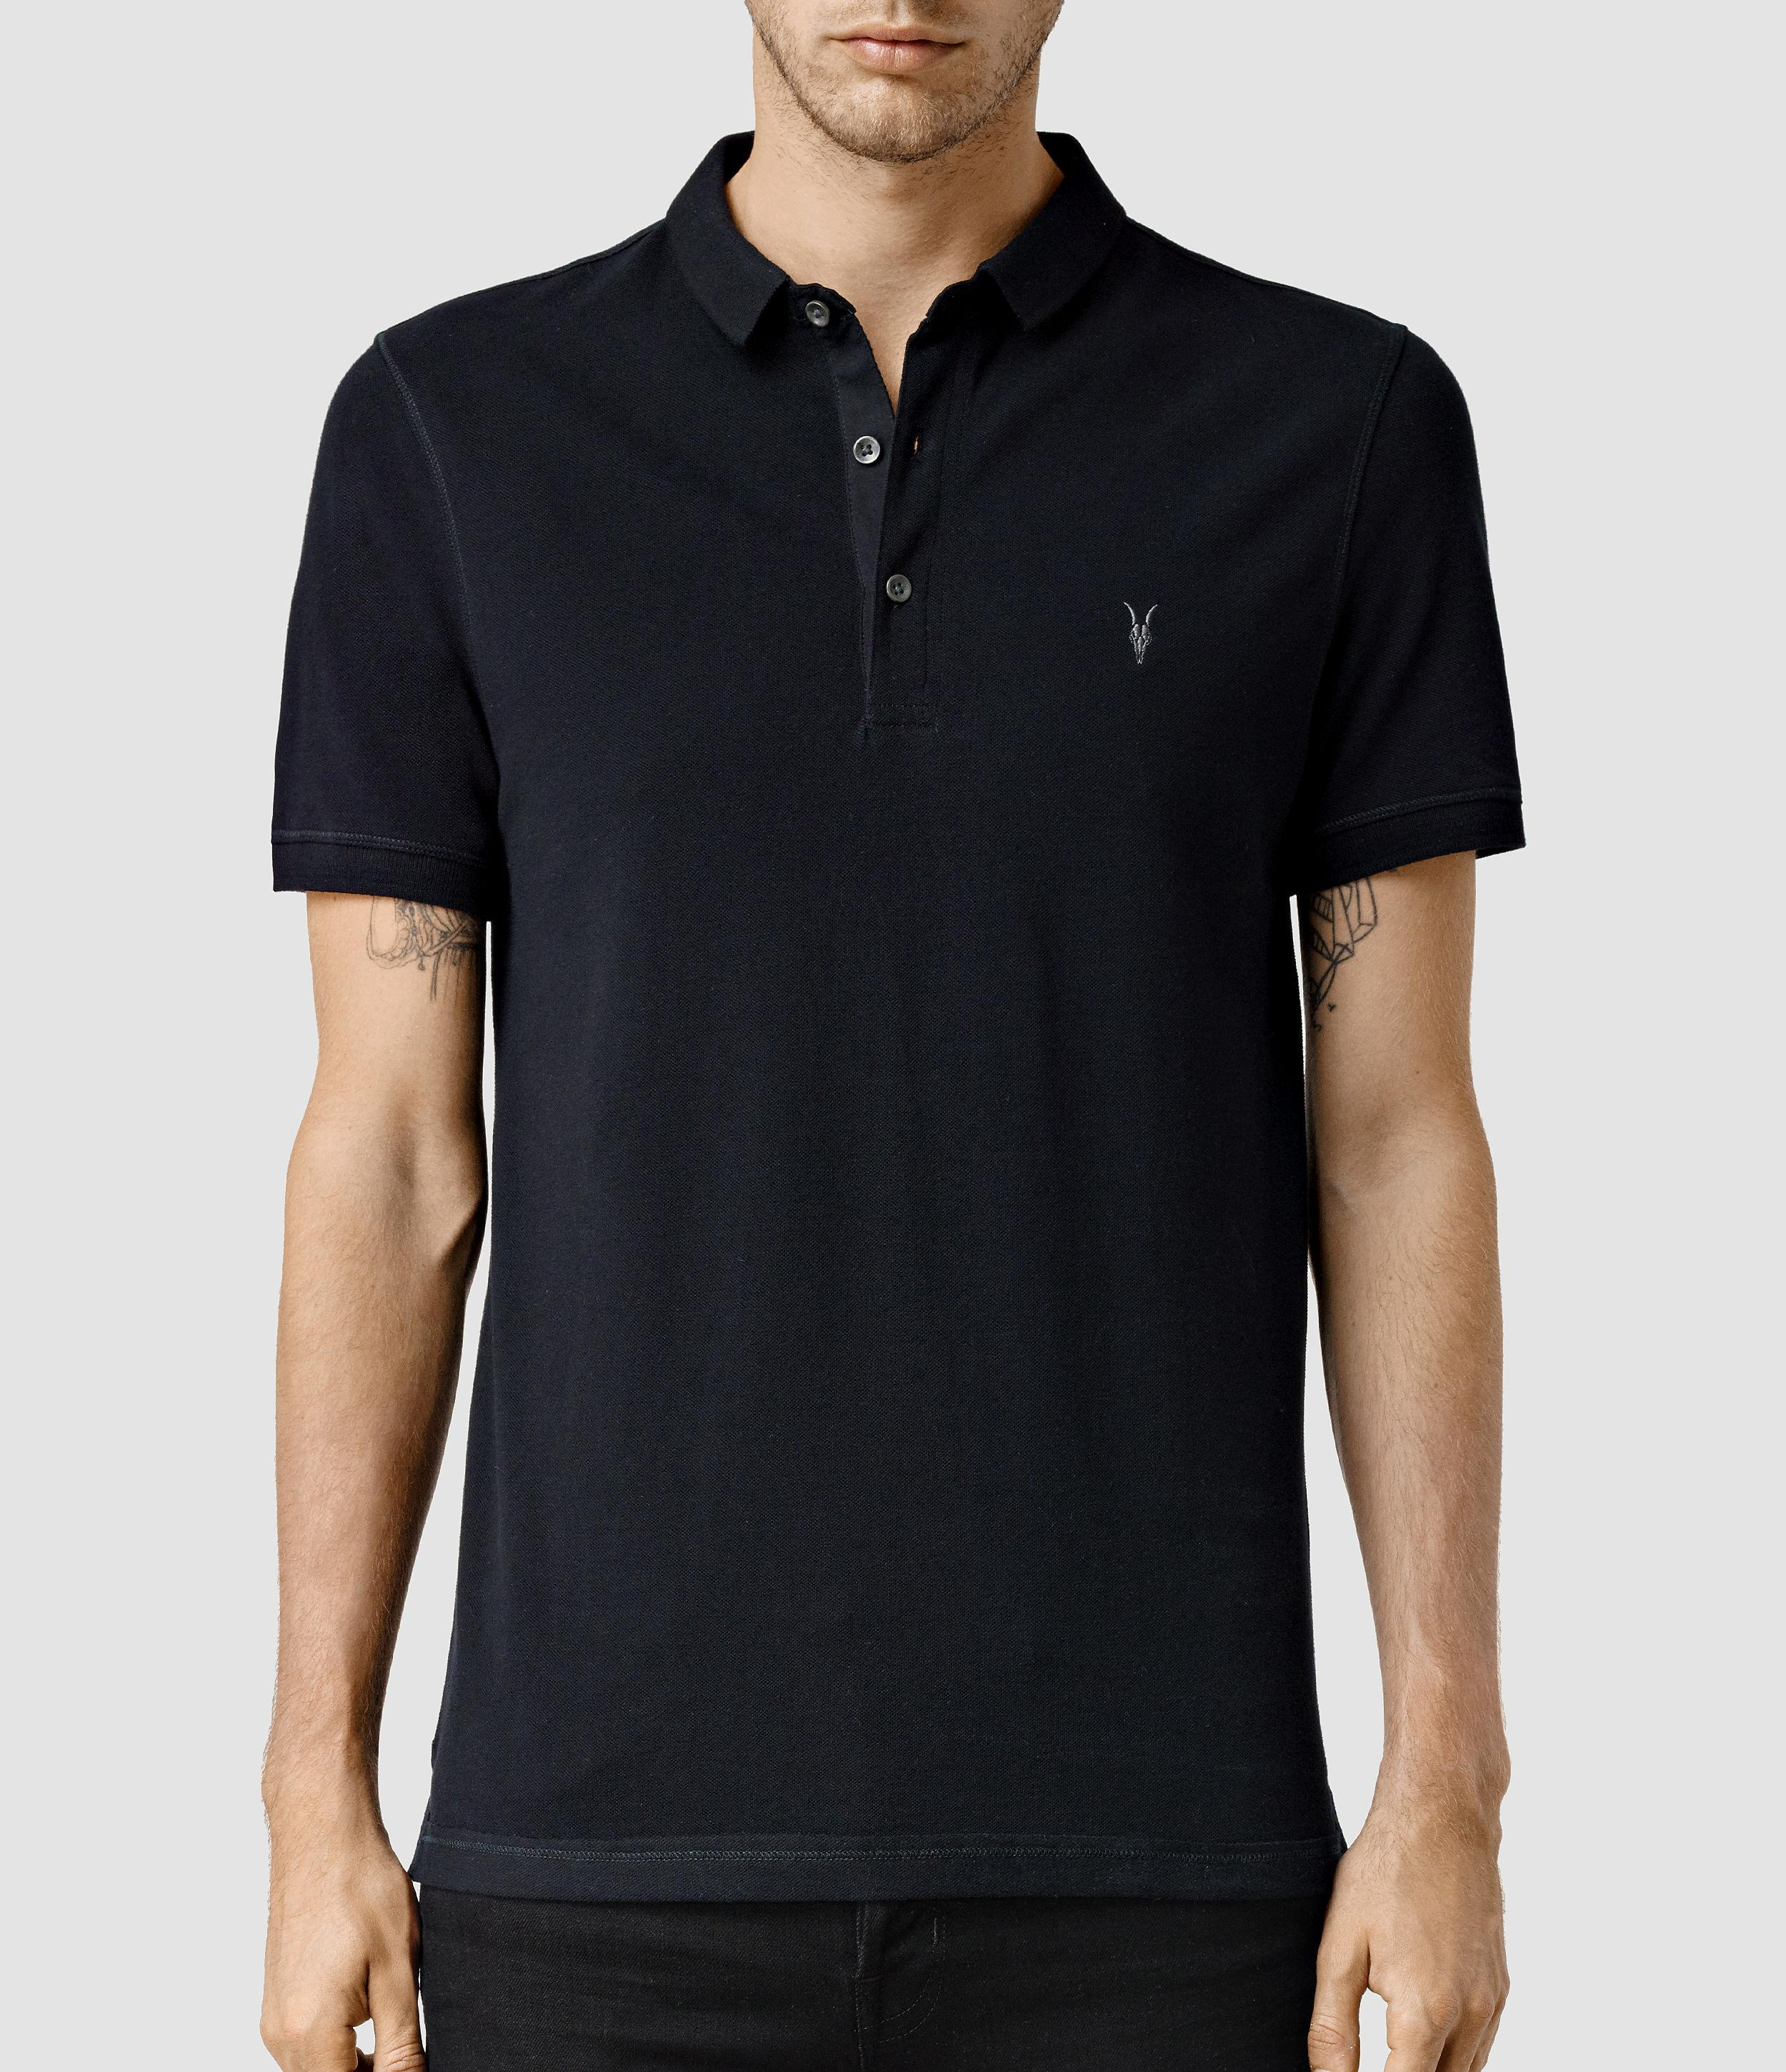 Lyst allsaints reform polo shirt in black for men for All saints polo shirt